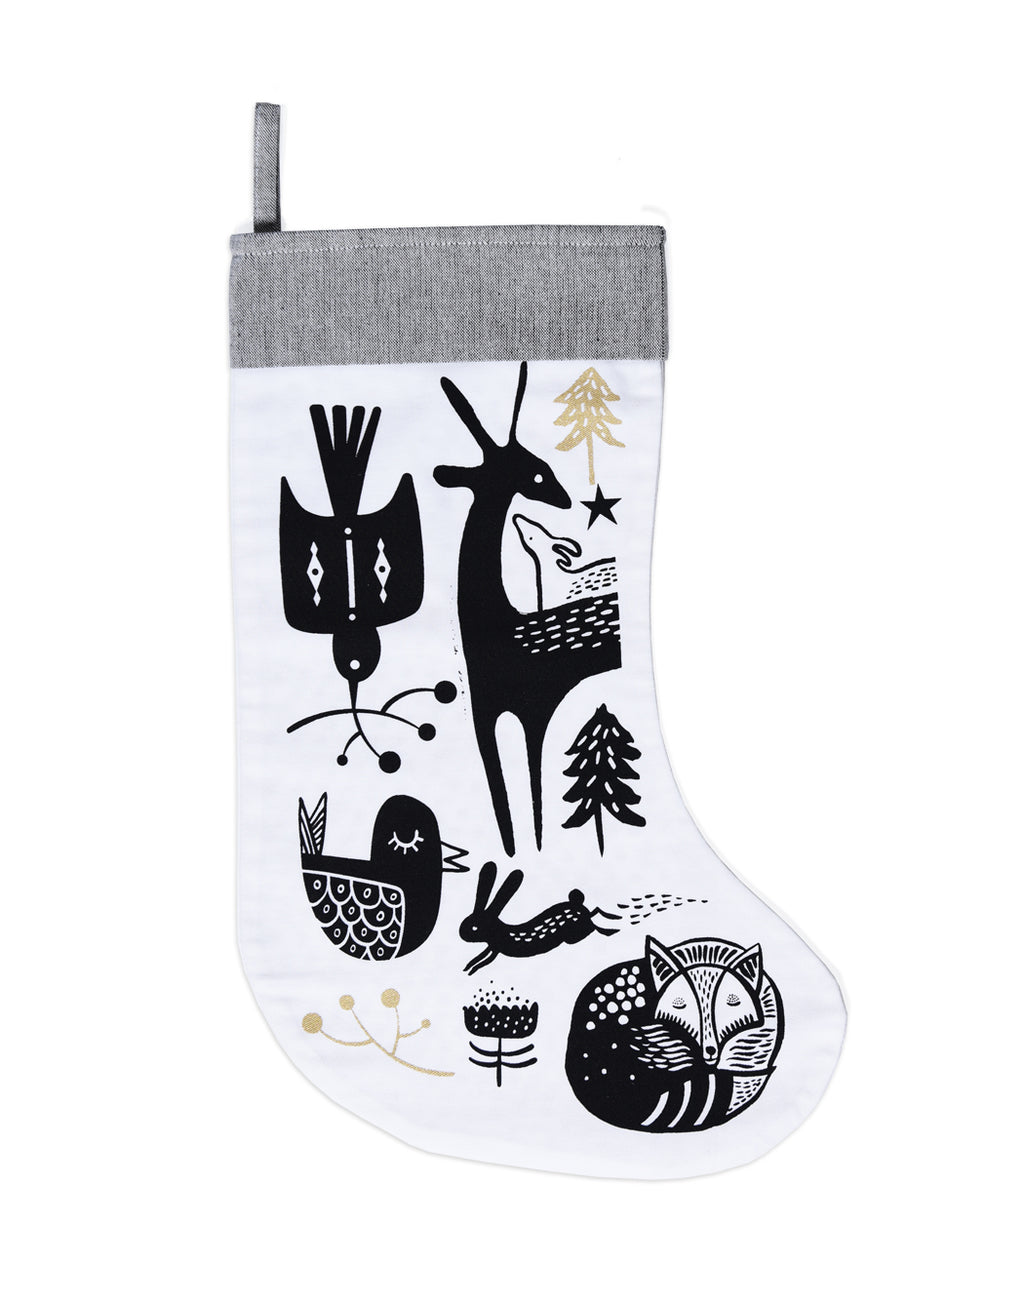 - Wee Gallery -  This Christmas stocking will give a beautiful touch to your baby's first holiday season. Tree and bunny screen-printed in black on organic cotton twill with gold highlights. The inner layer of the stocking is printed with golden dots. Grey band at the top with sturdy loop for hanging.